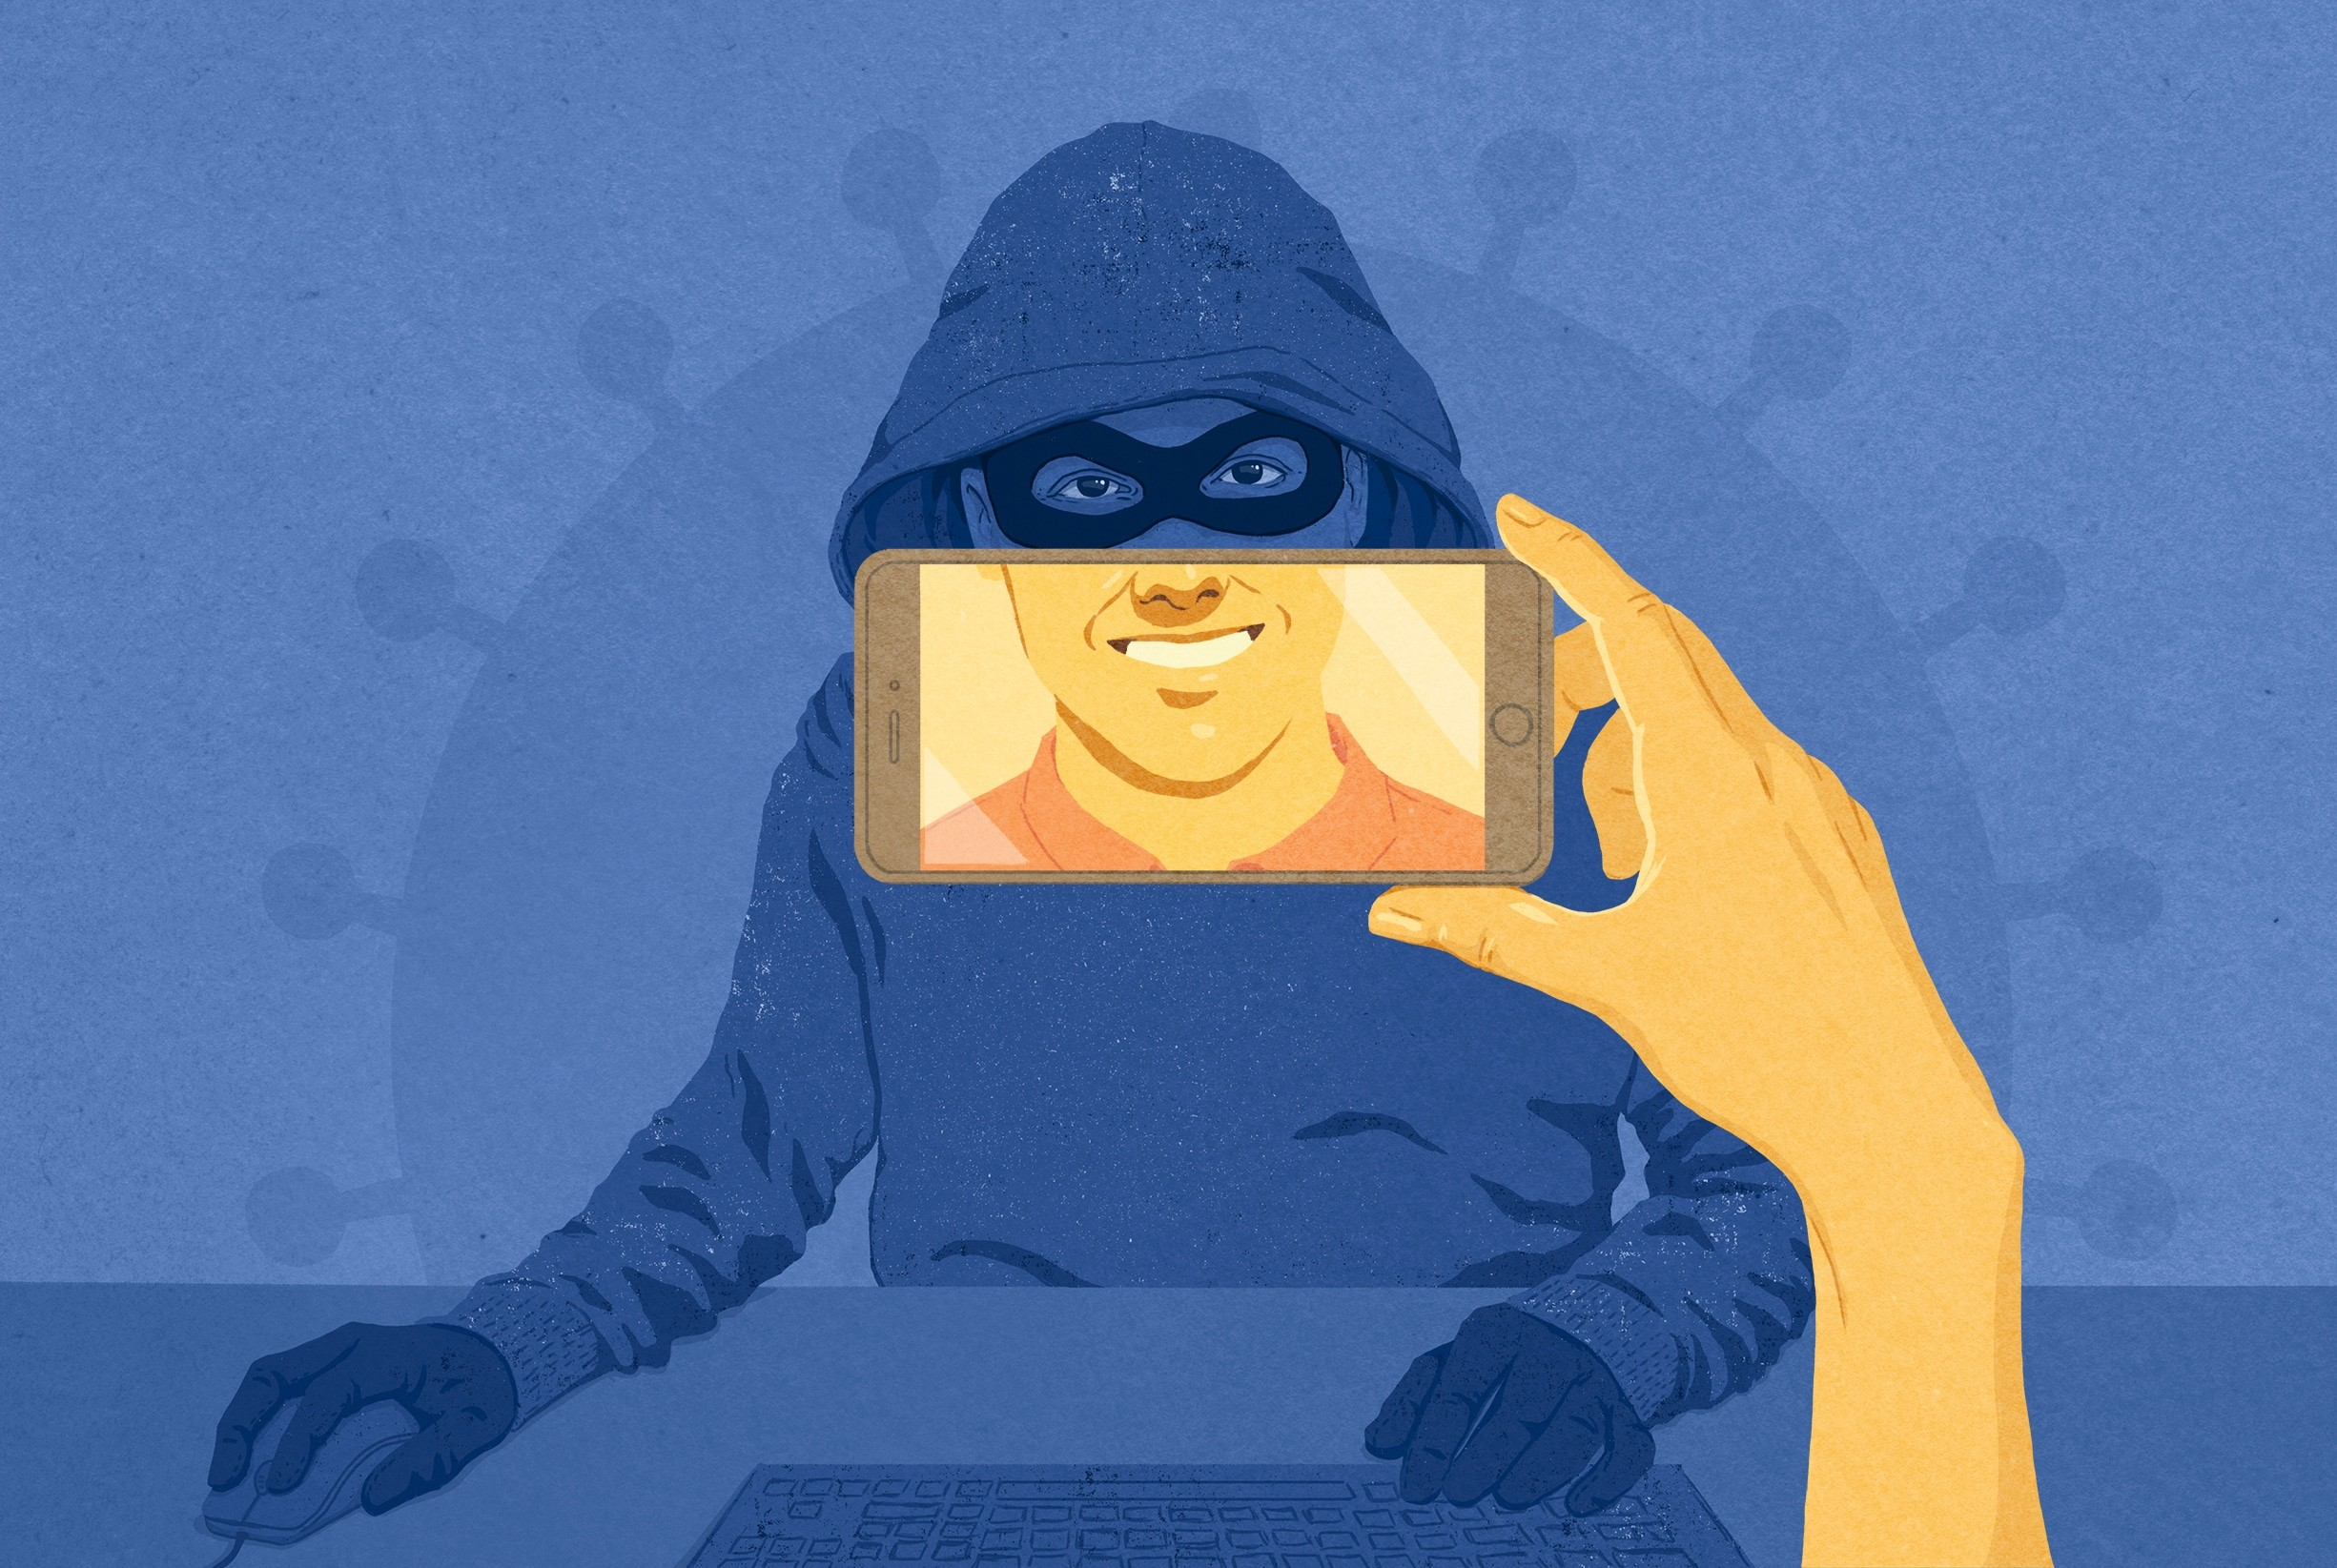 illustration of hooded man with a phone display with a smile placed over his mouth